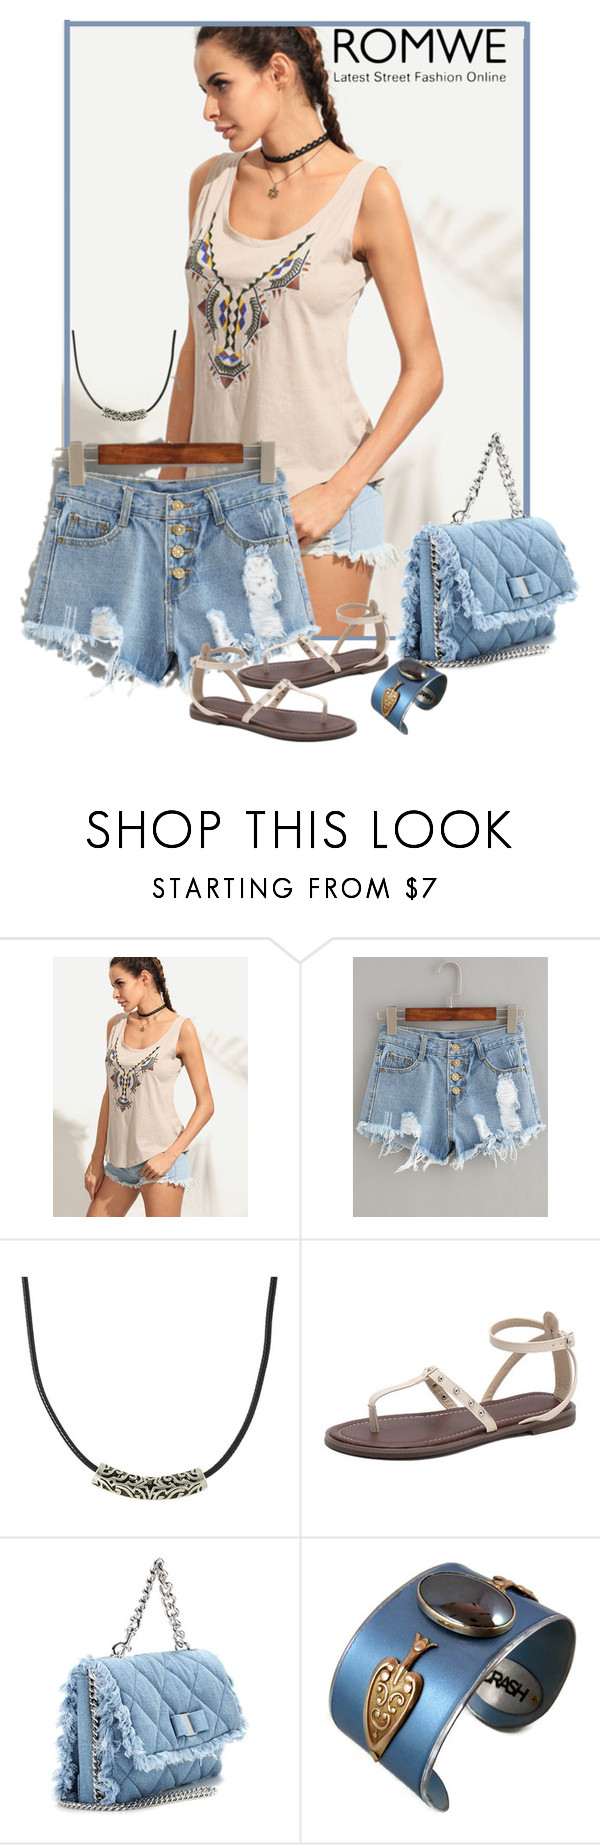 """""""Romwe Contest"""" by lorrainekeenan ❤ liked on Polyvore featuring Salvatore Ferragamo"""